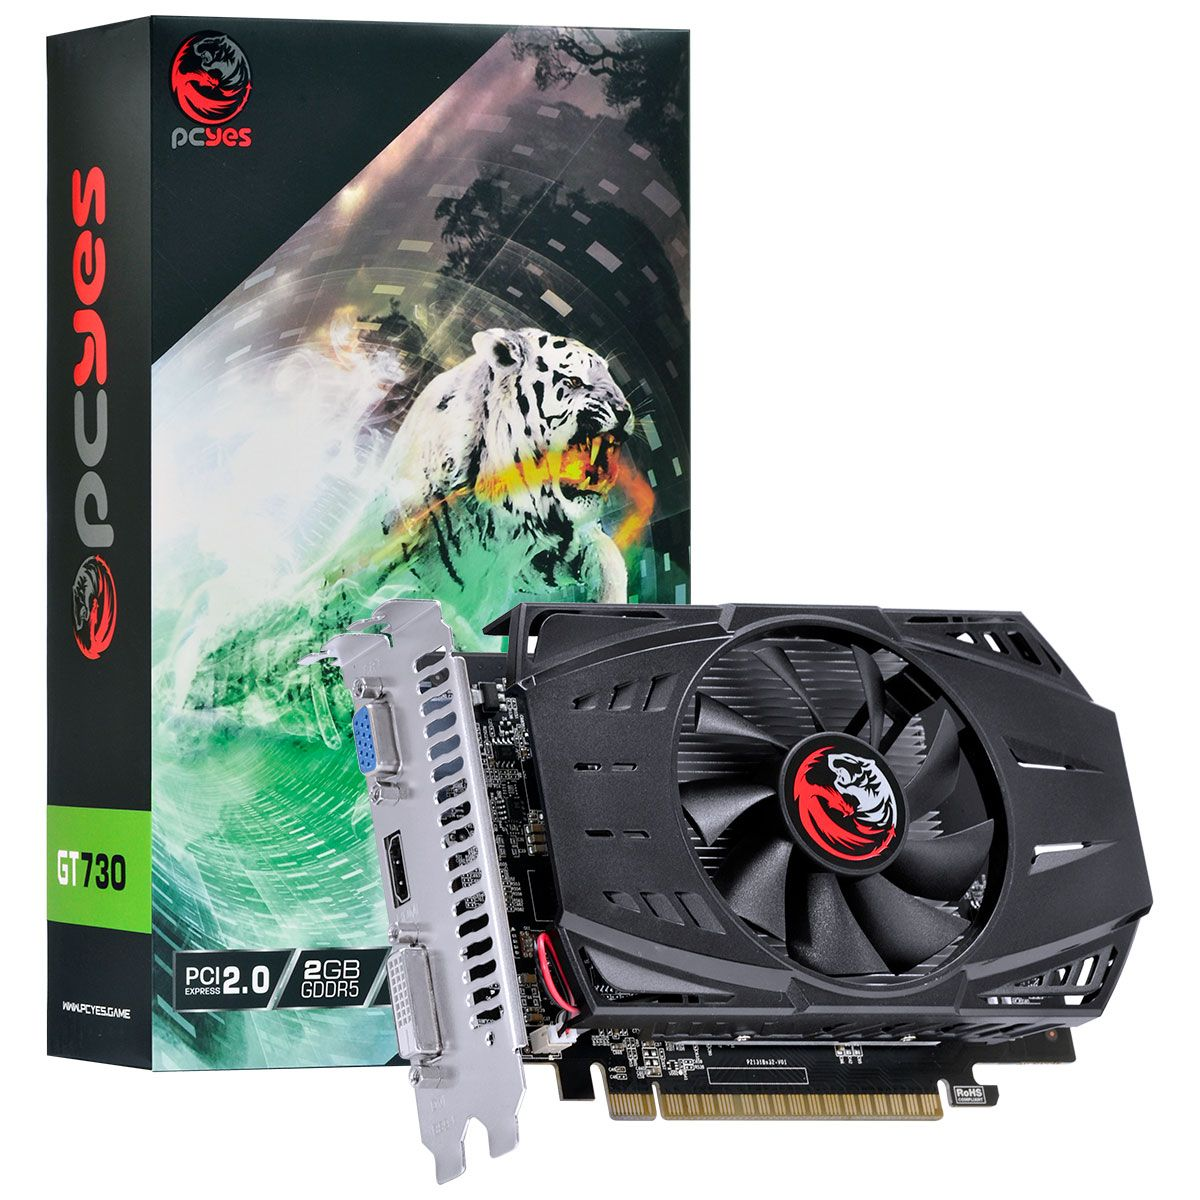 Placa de Vídeo Geforce GT 730 2GB GDDR5 64Bits PA730GT6402G5 - PCYES